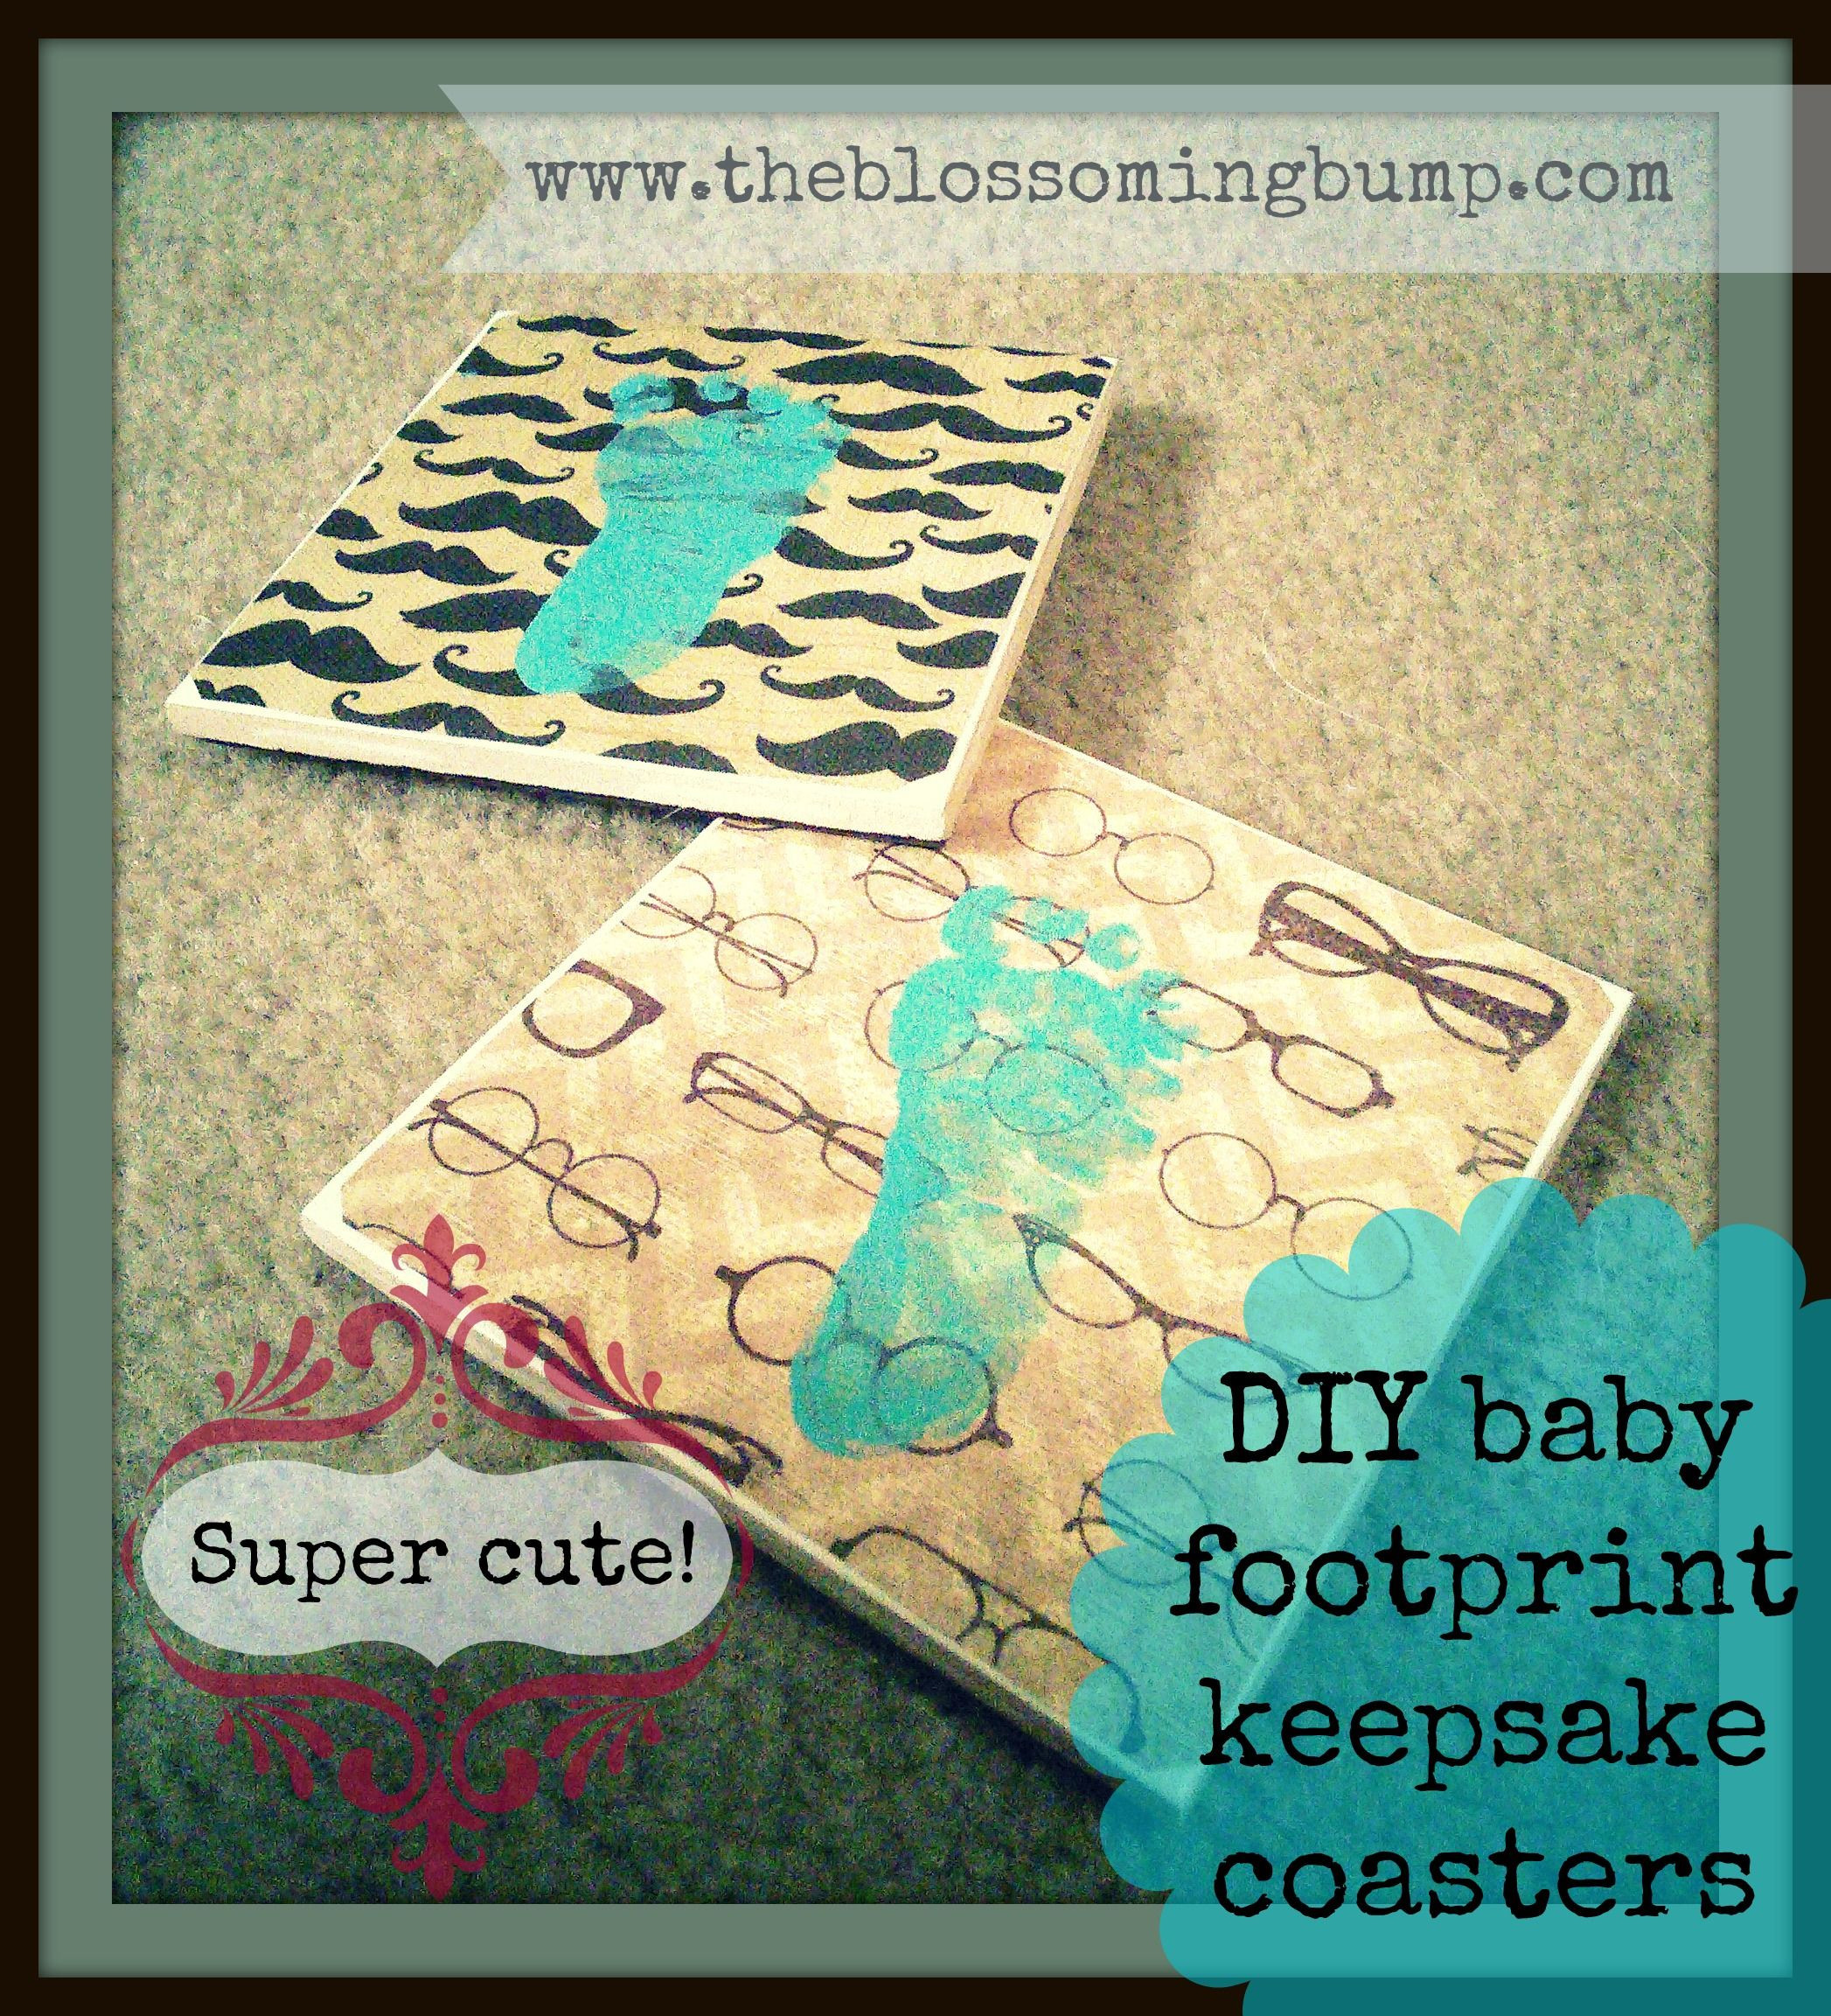 Best ideas about DIY Baby Footprints . Save or Pin Super cute DIY baby footprint keepsake coasters and other Now.